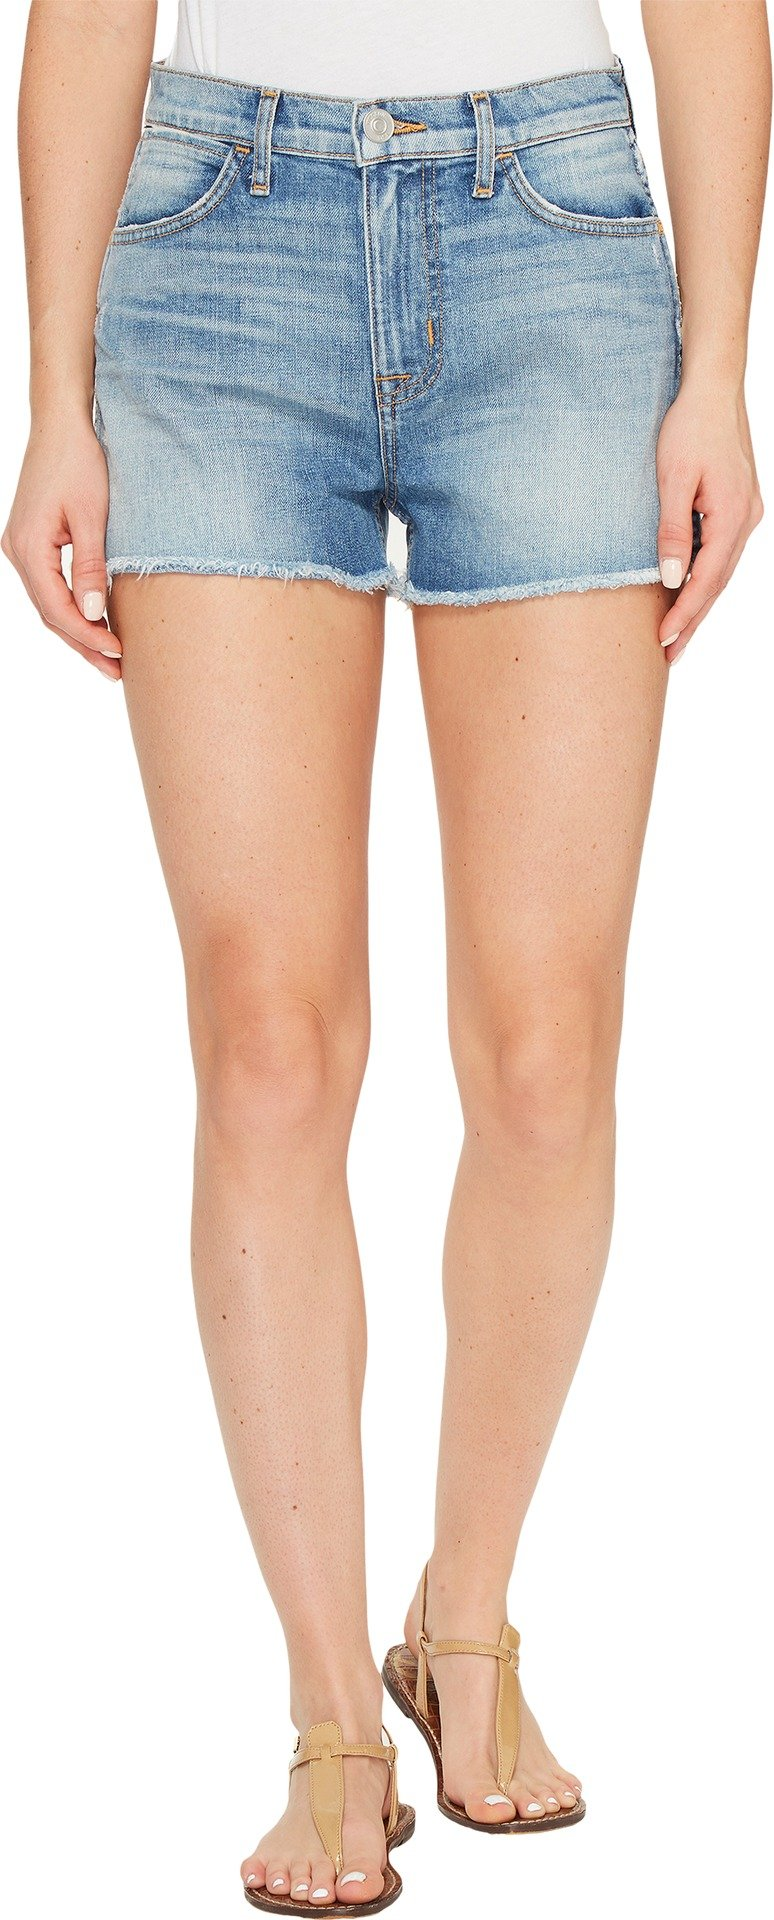 Hudson Jeans Women's Soko High Rise Cut Off 5-Pocket Short, Endurance, 26